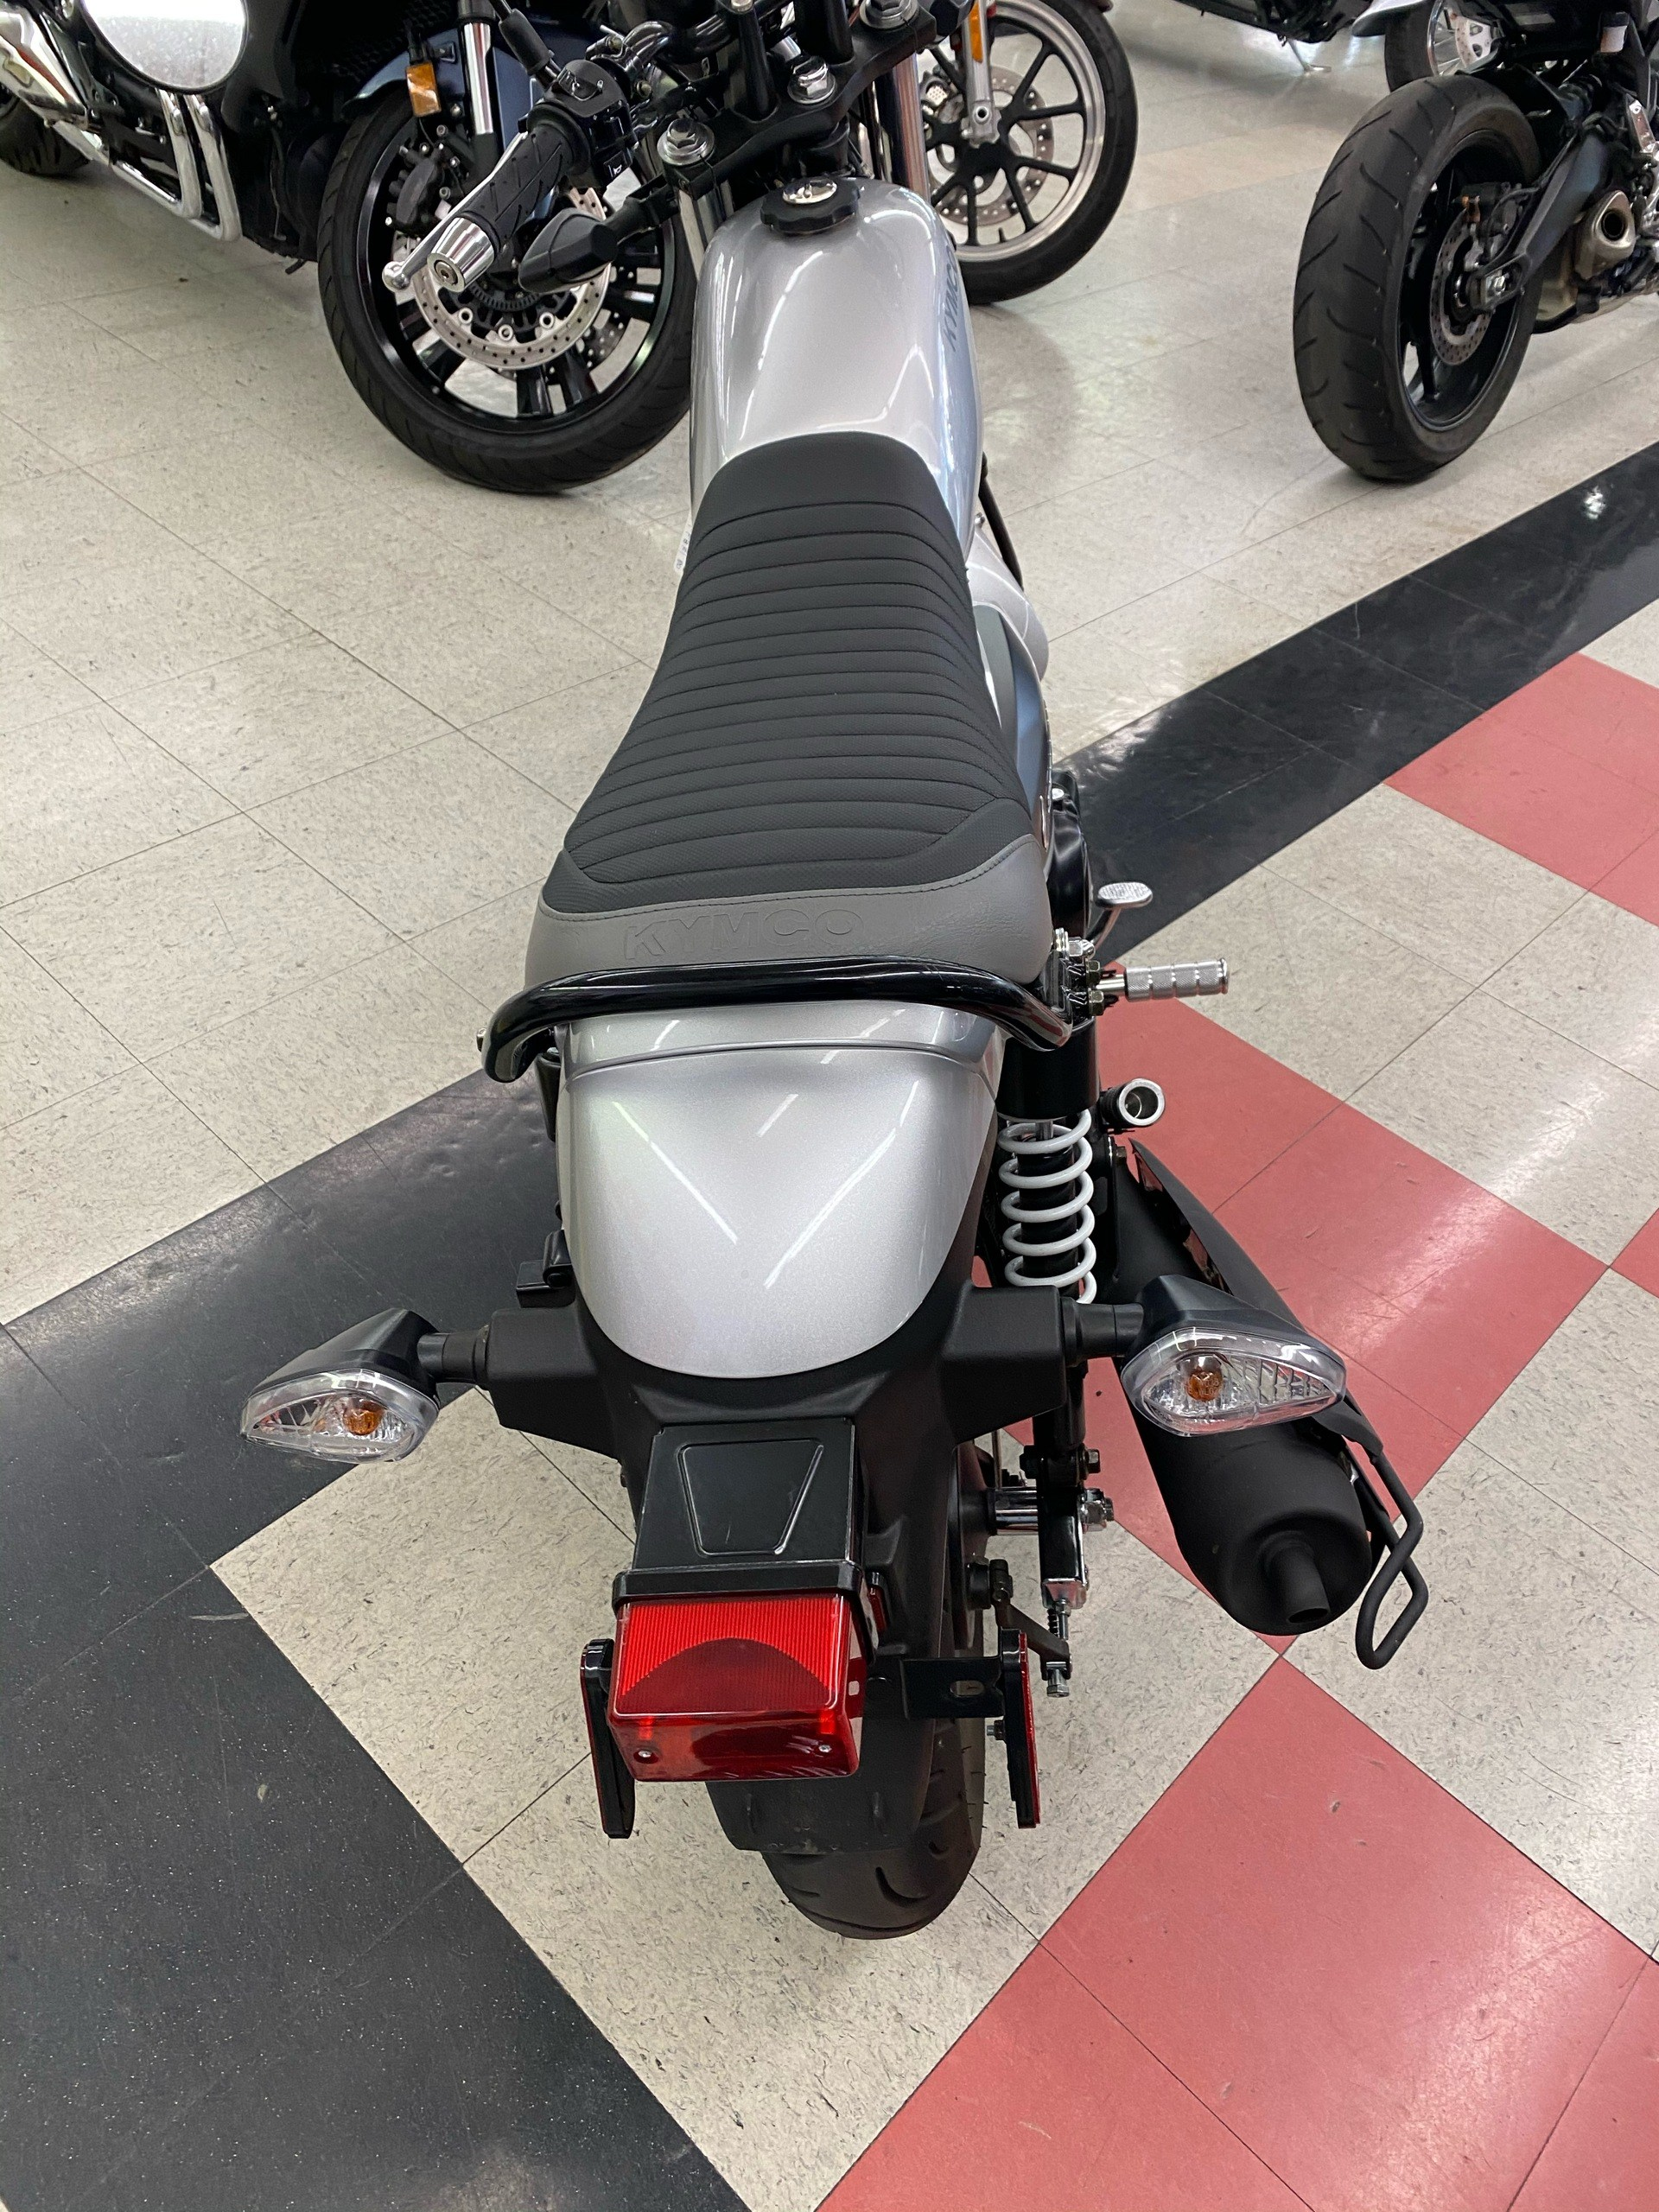 2019 Kymco Spade 150 in Colorado Springs, Colorado - Photo 8